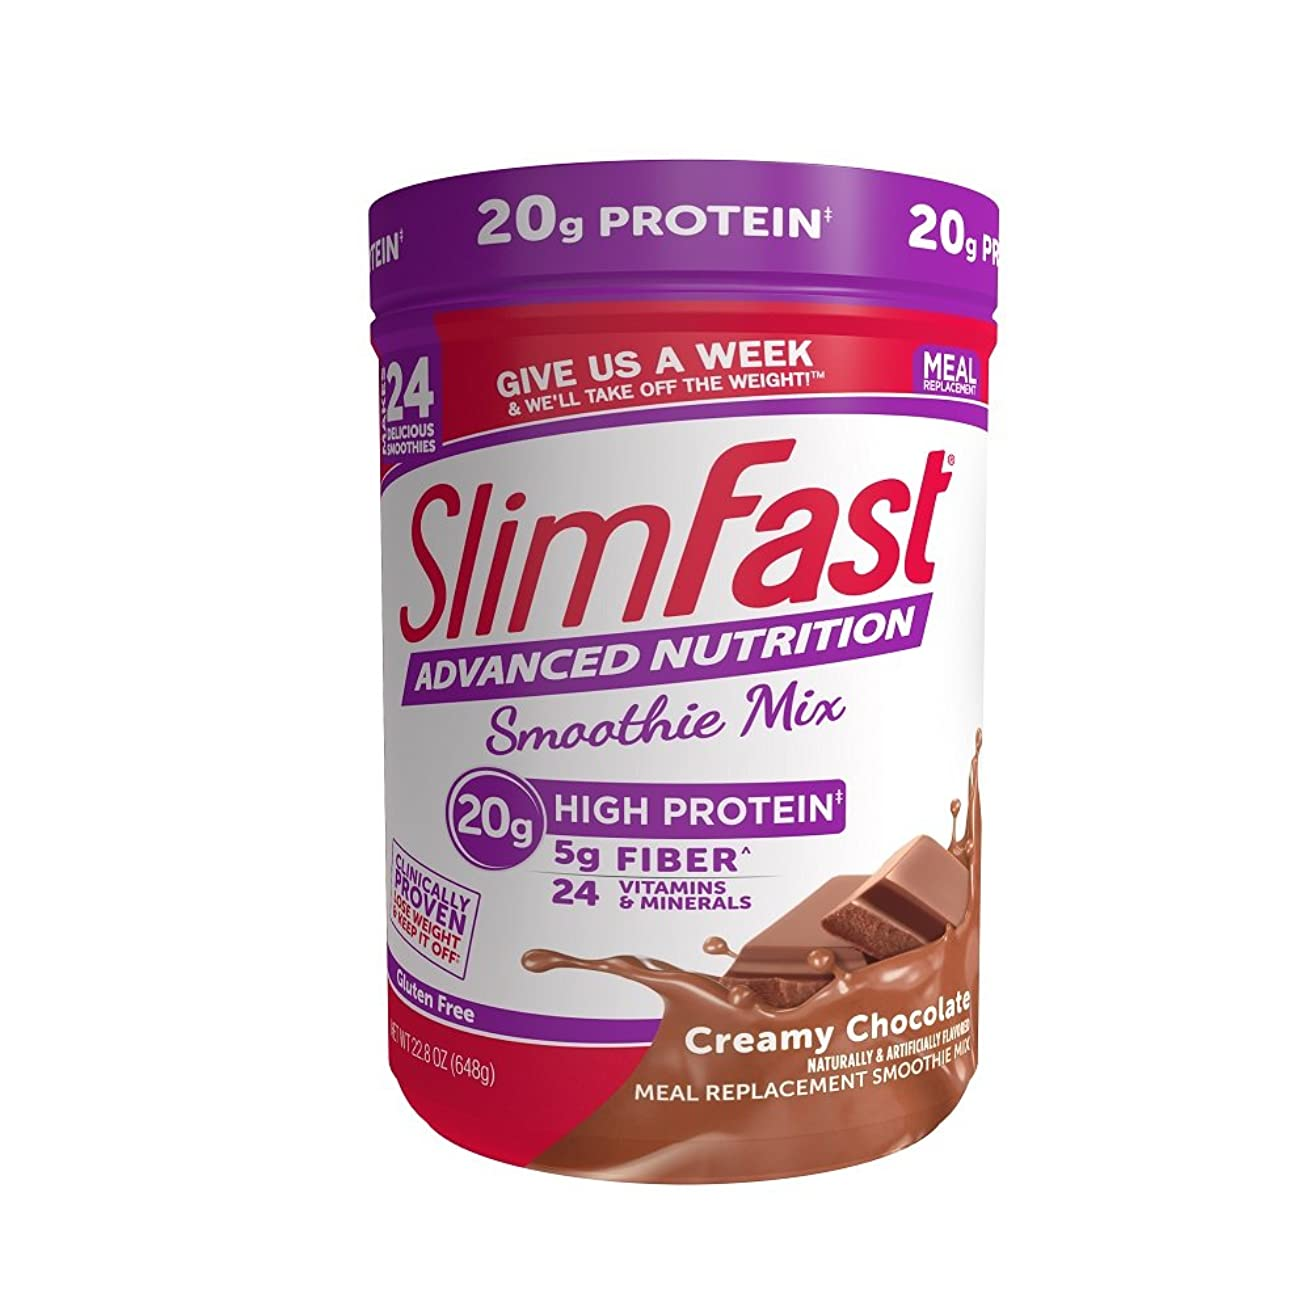 SlimFast Advanced Nutrition Creamy Chocolate Smoothie Mix – Weight Loss Meal Replacement – 20g of protein – 22.8 oz. Canister – 24 servings